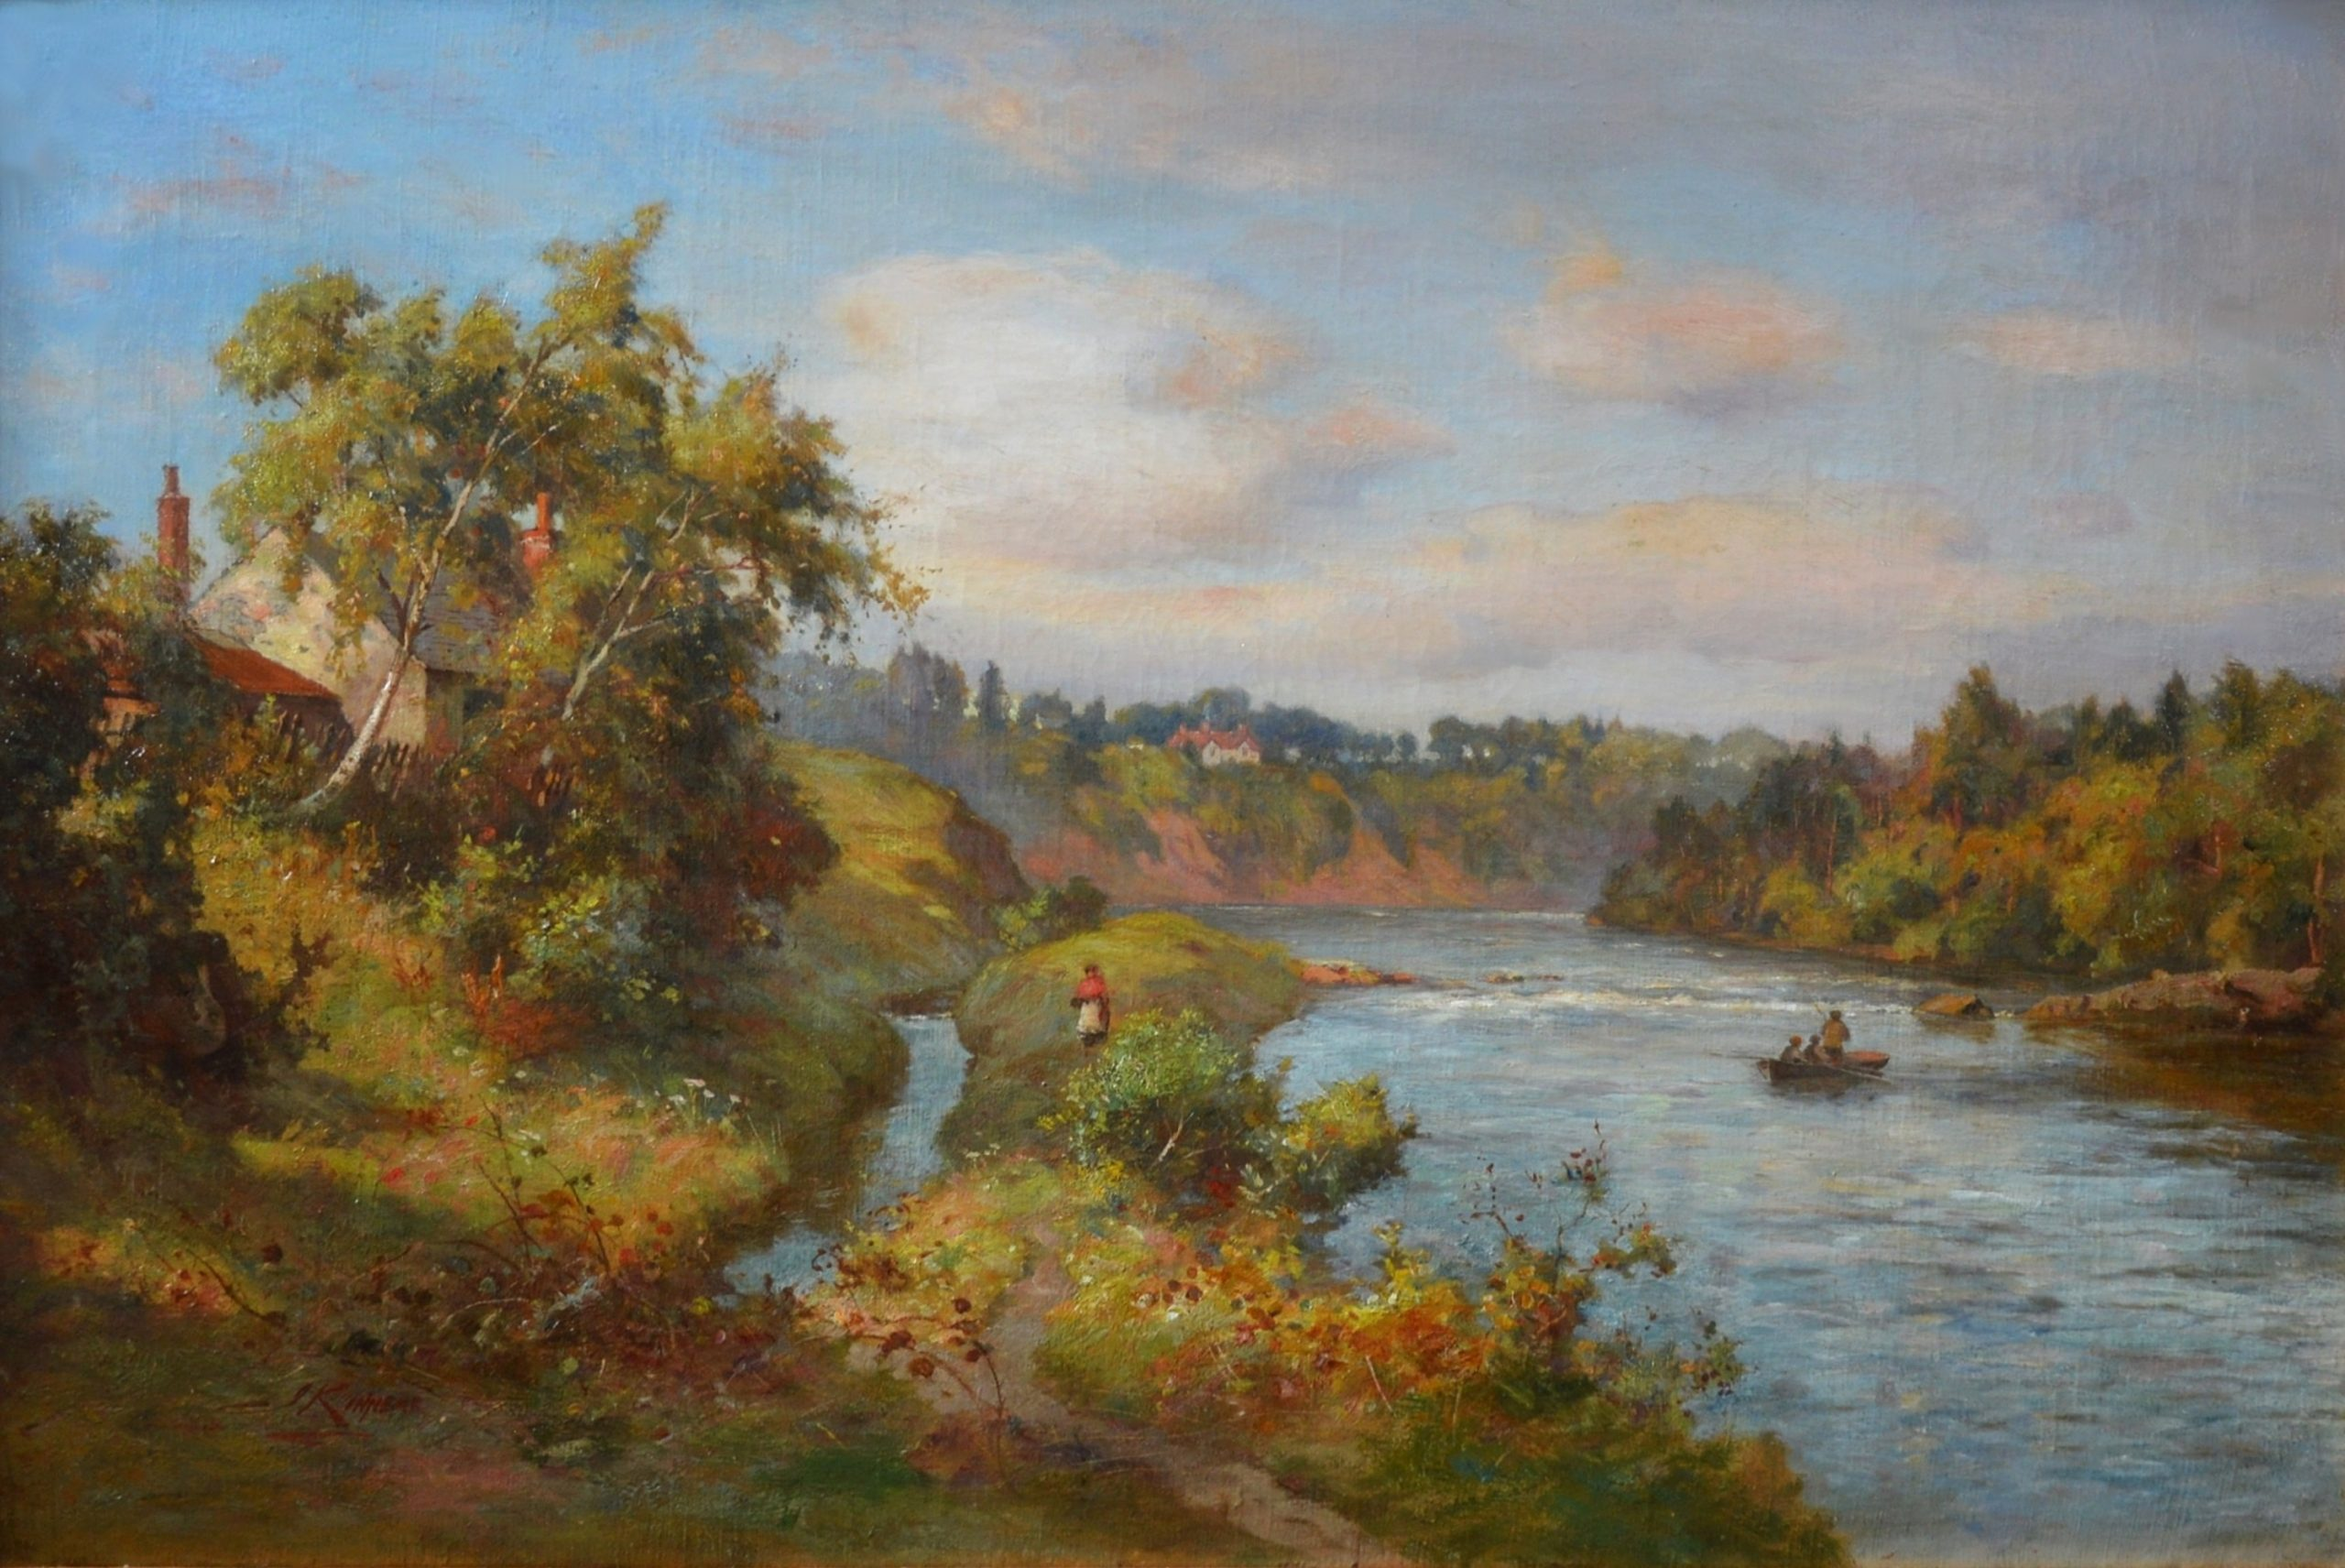 The Tay near Stanley - 19th Century Scottish Landscape Oil Painting Image